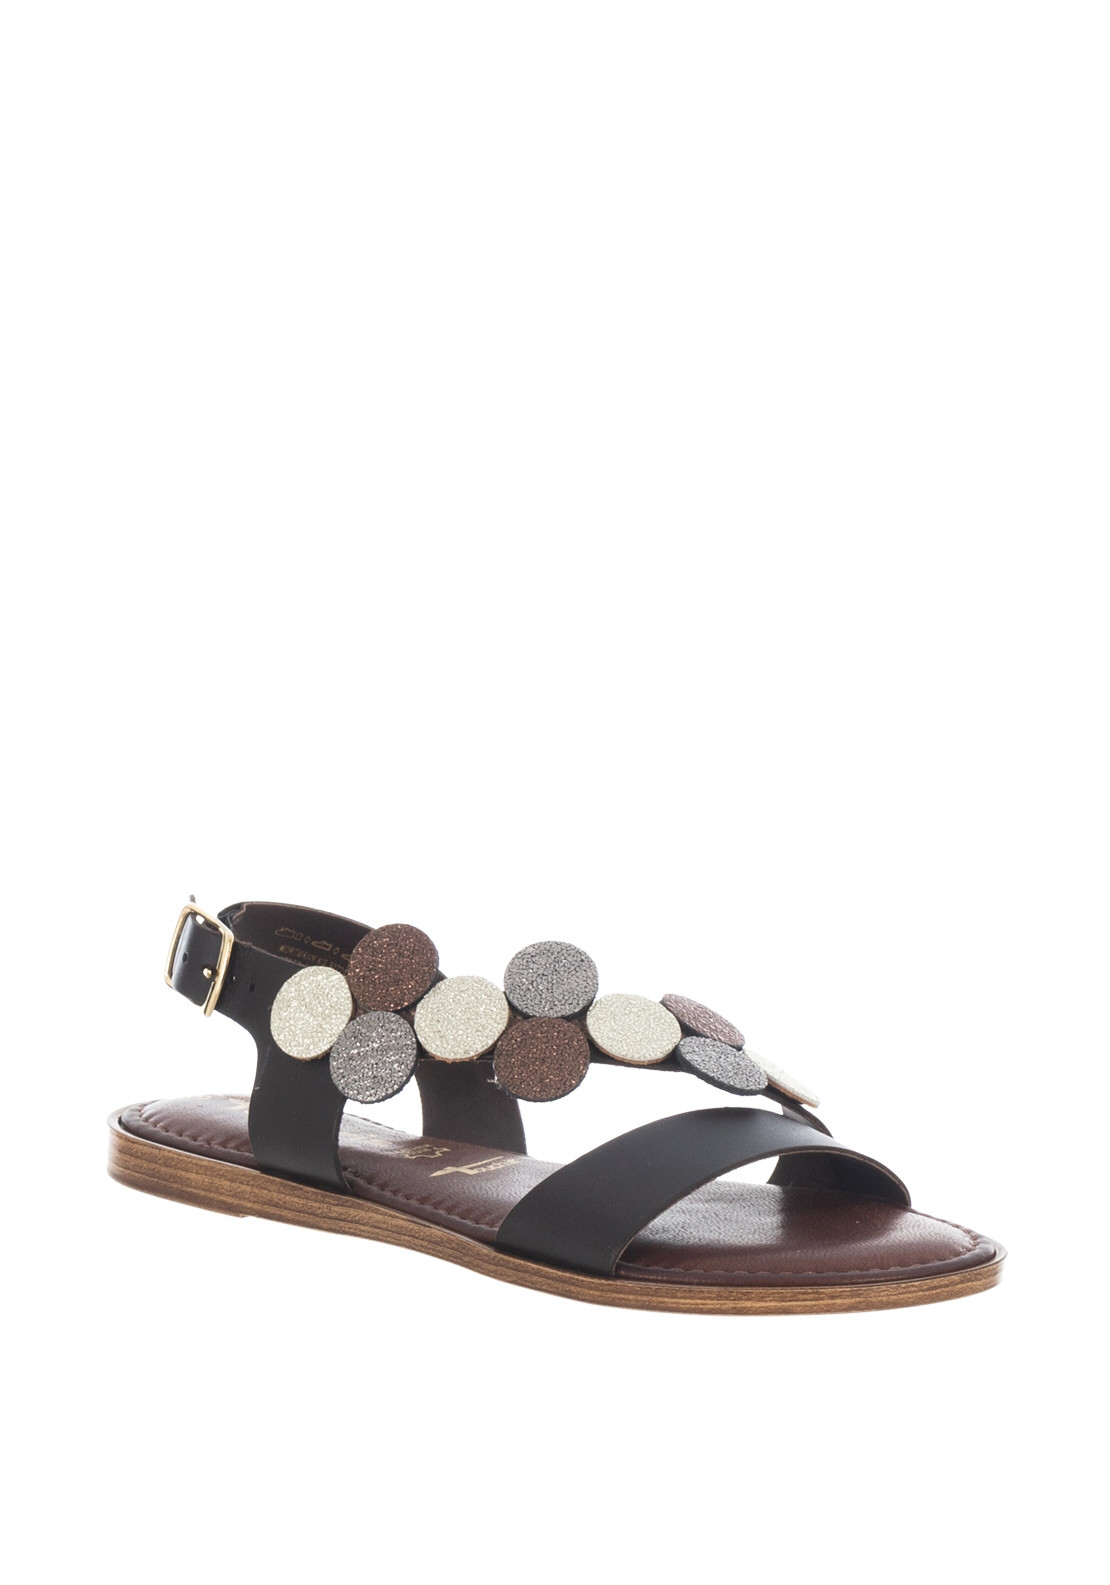 SandalsBrown Cut Out Disc Tamaris Leather bI7vgyYf6